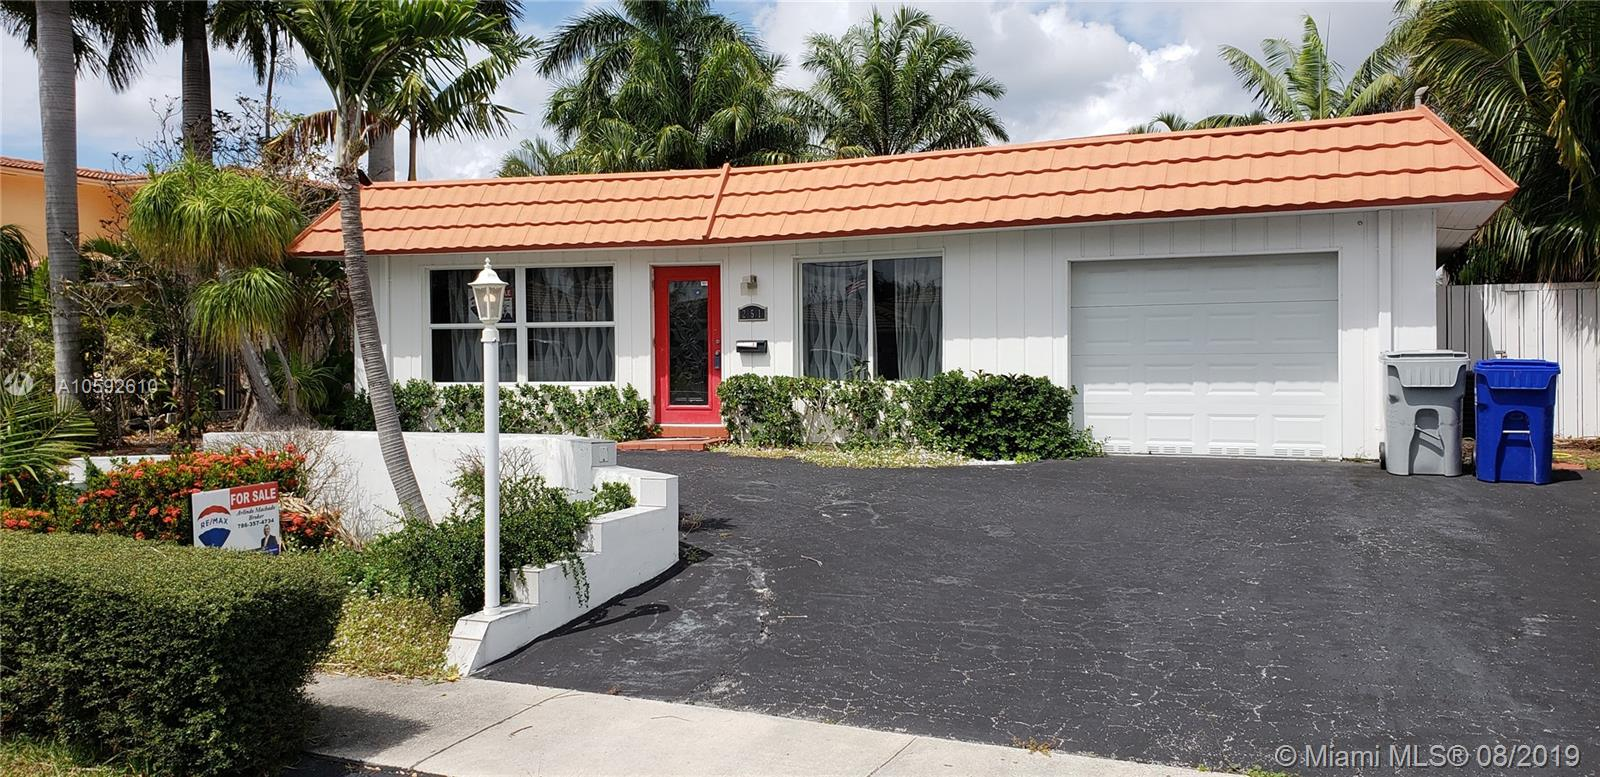 Property for sale at 251 SE 11th St, Pompano Beach,  Florida 33060